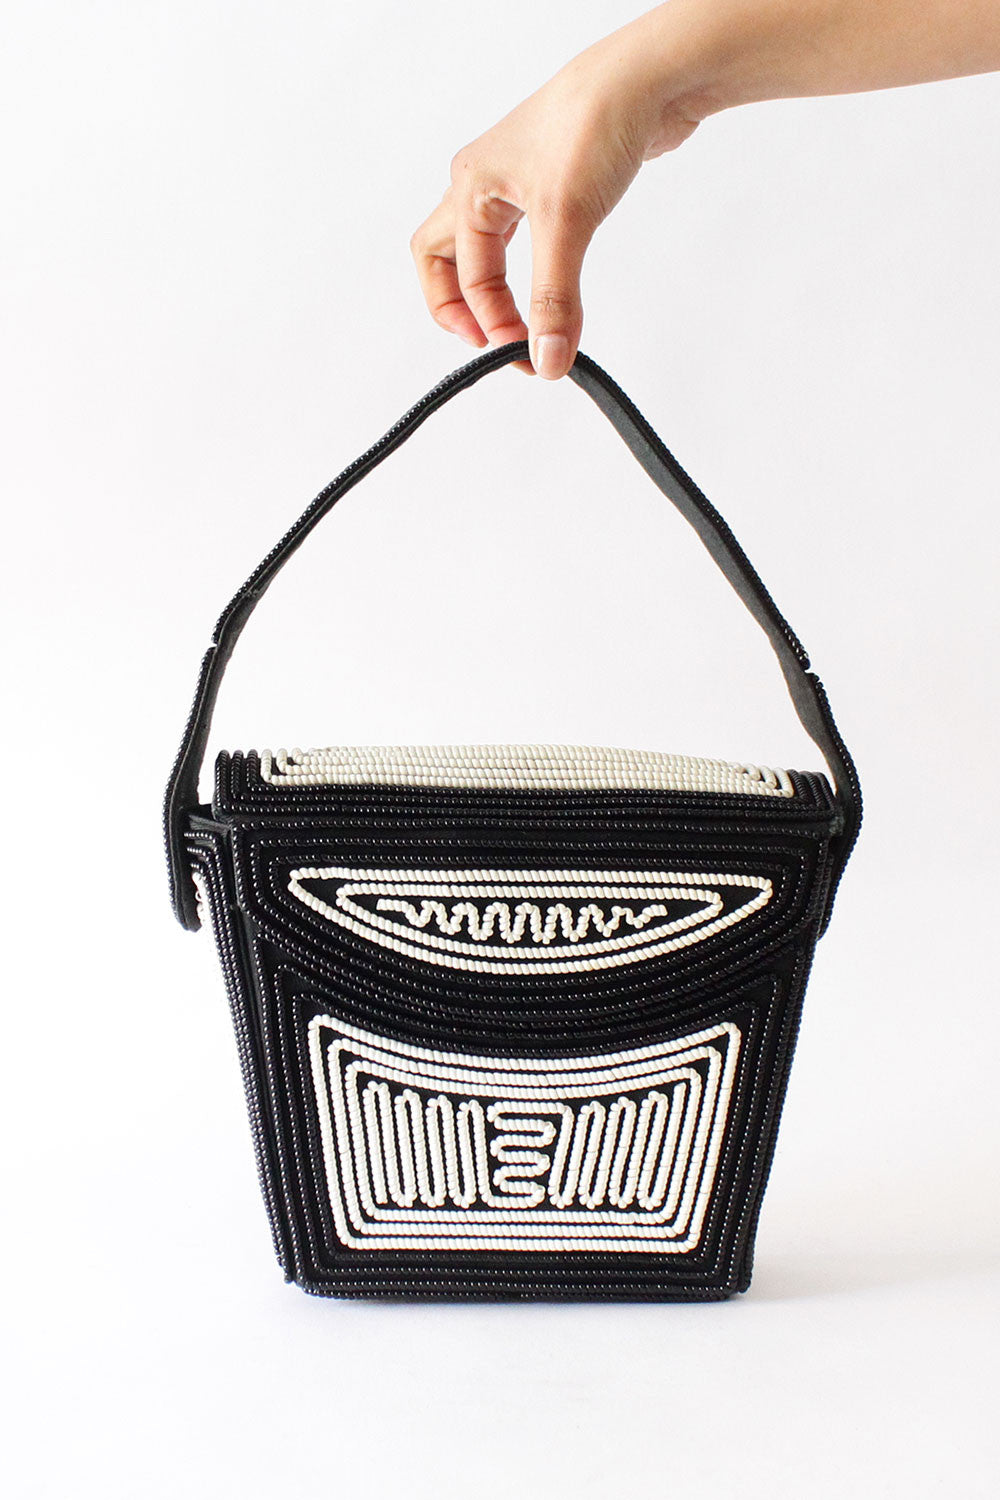 40s Telephone Cord Purse